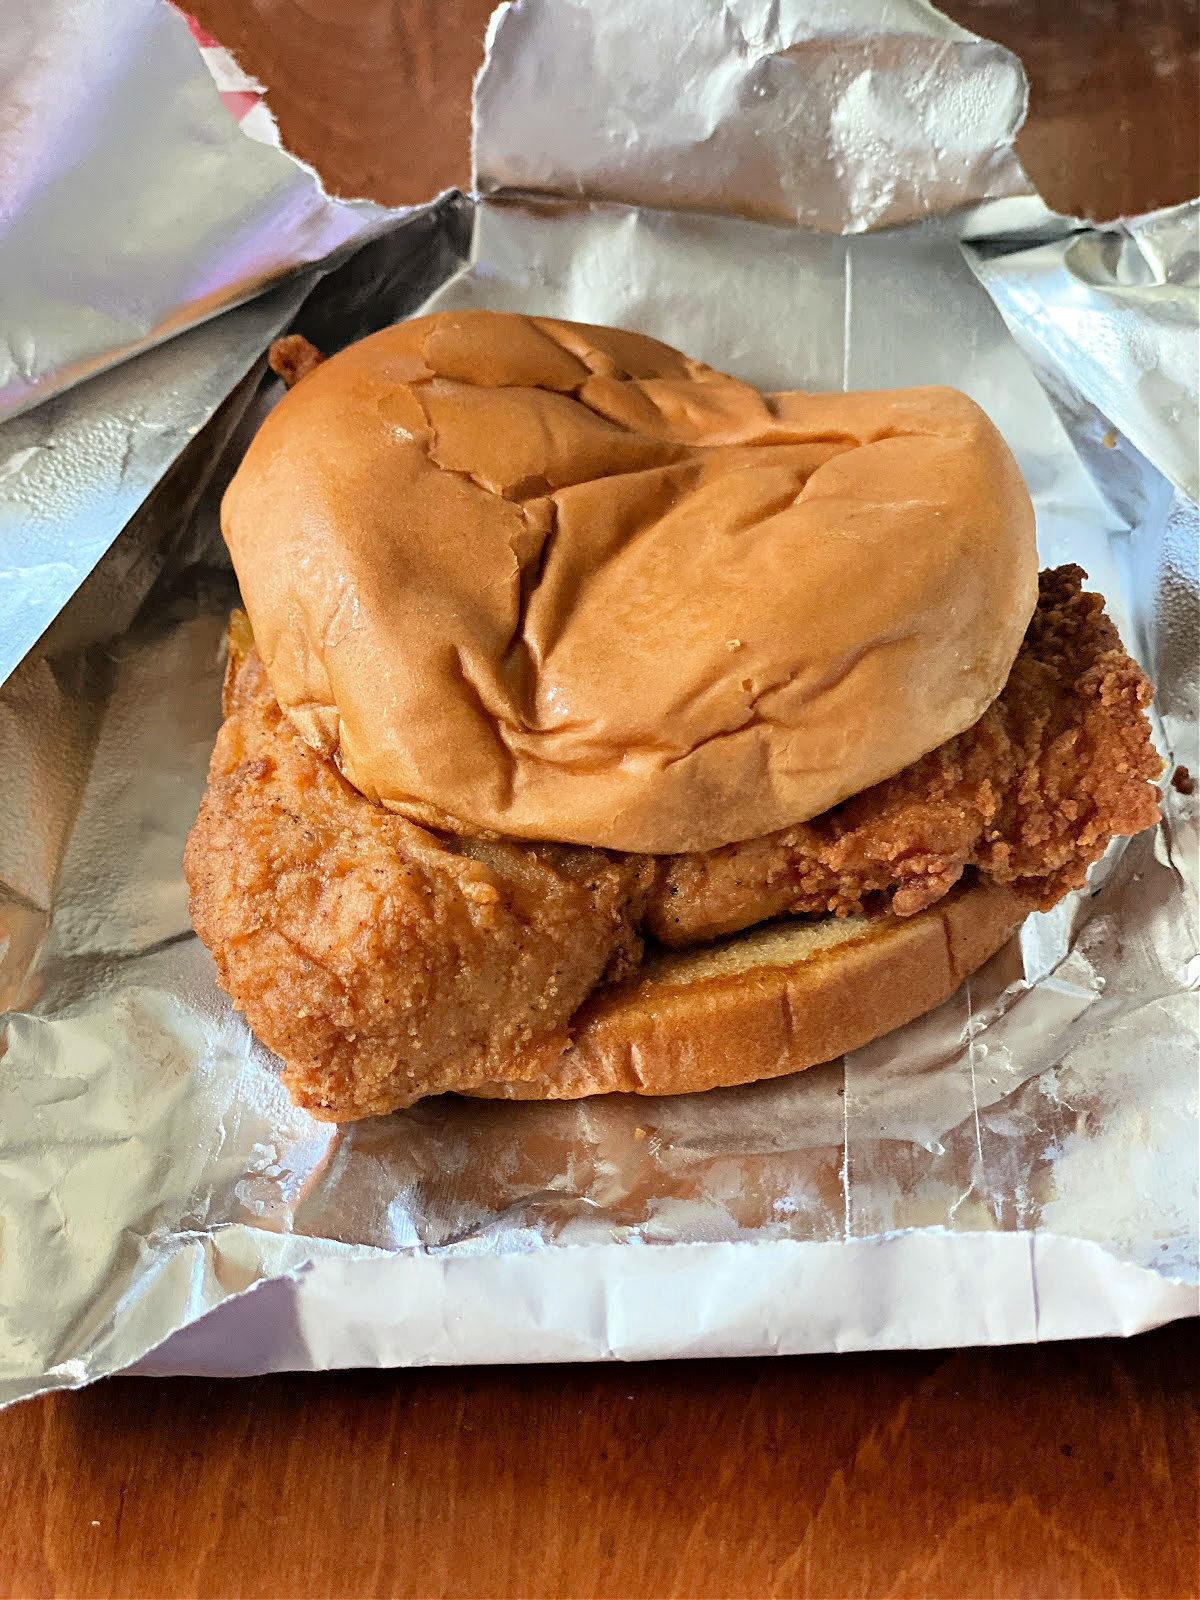 Classic Chick-Fil-A sandwich sitting on its wrapper.